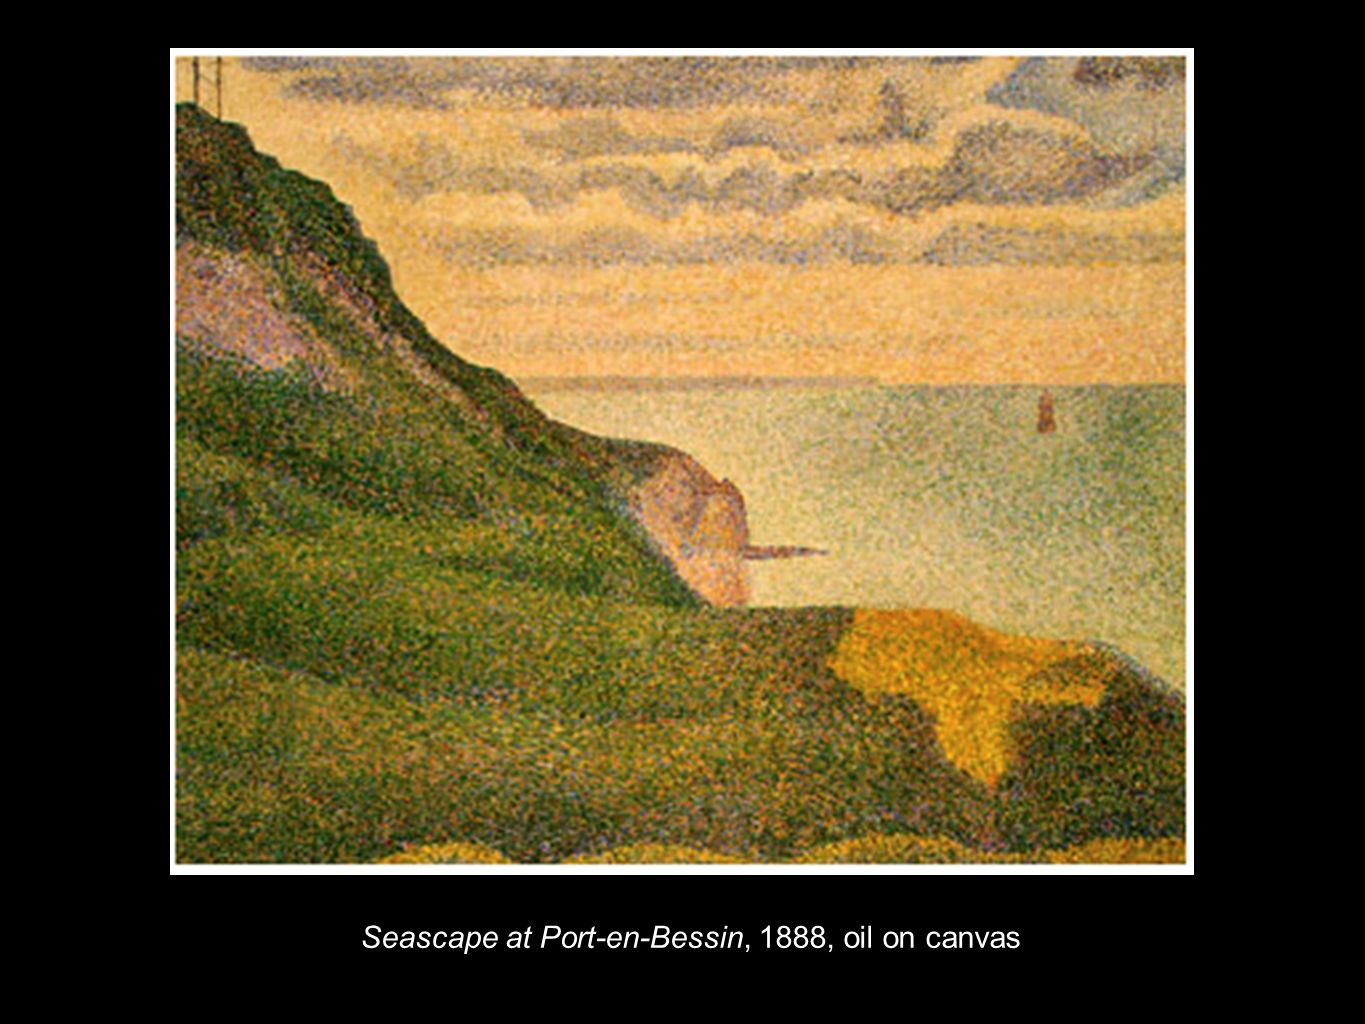 Seascape at Port-en-Bessin, 1888, oil on canvas